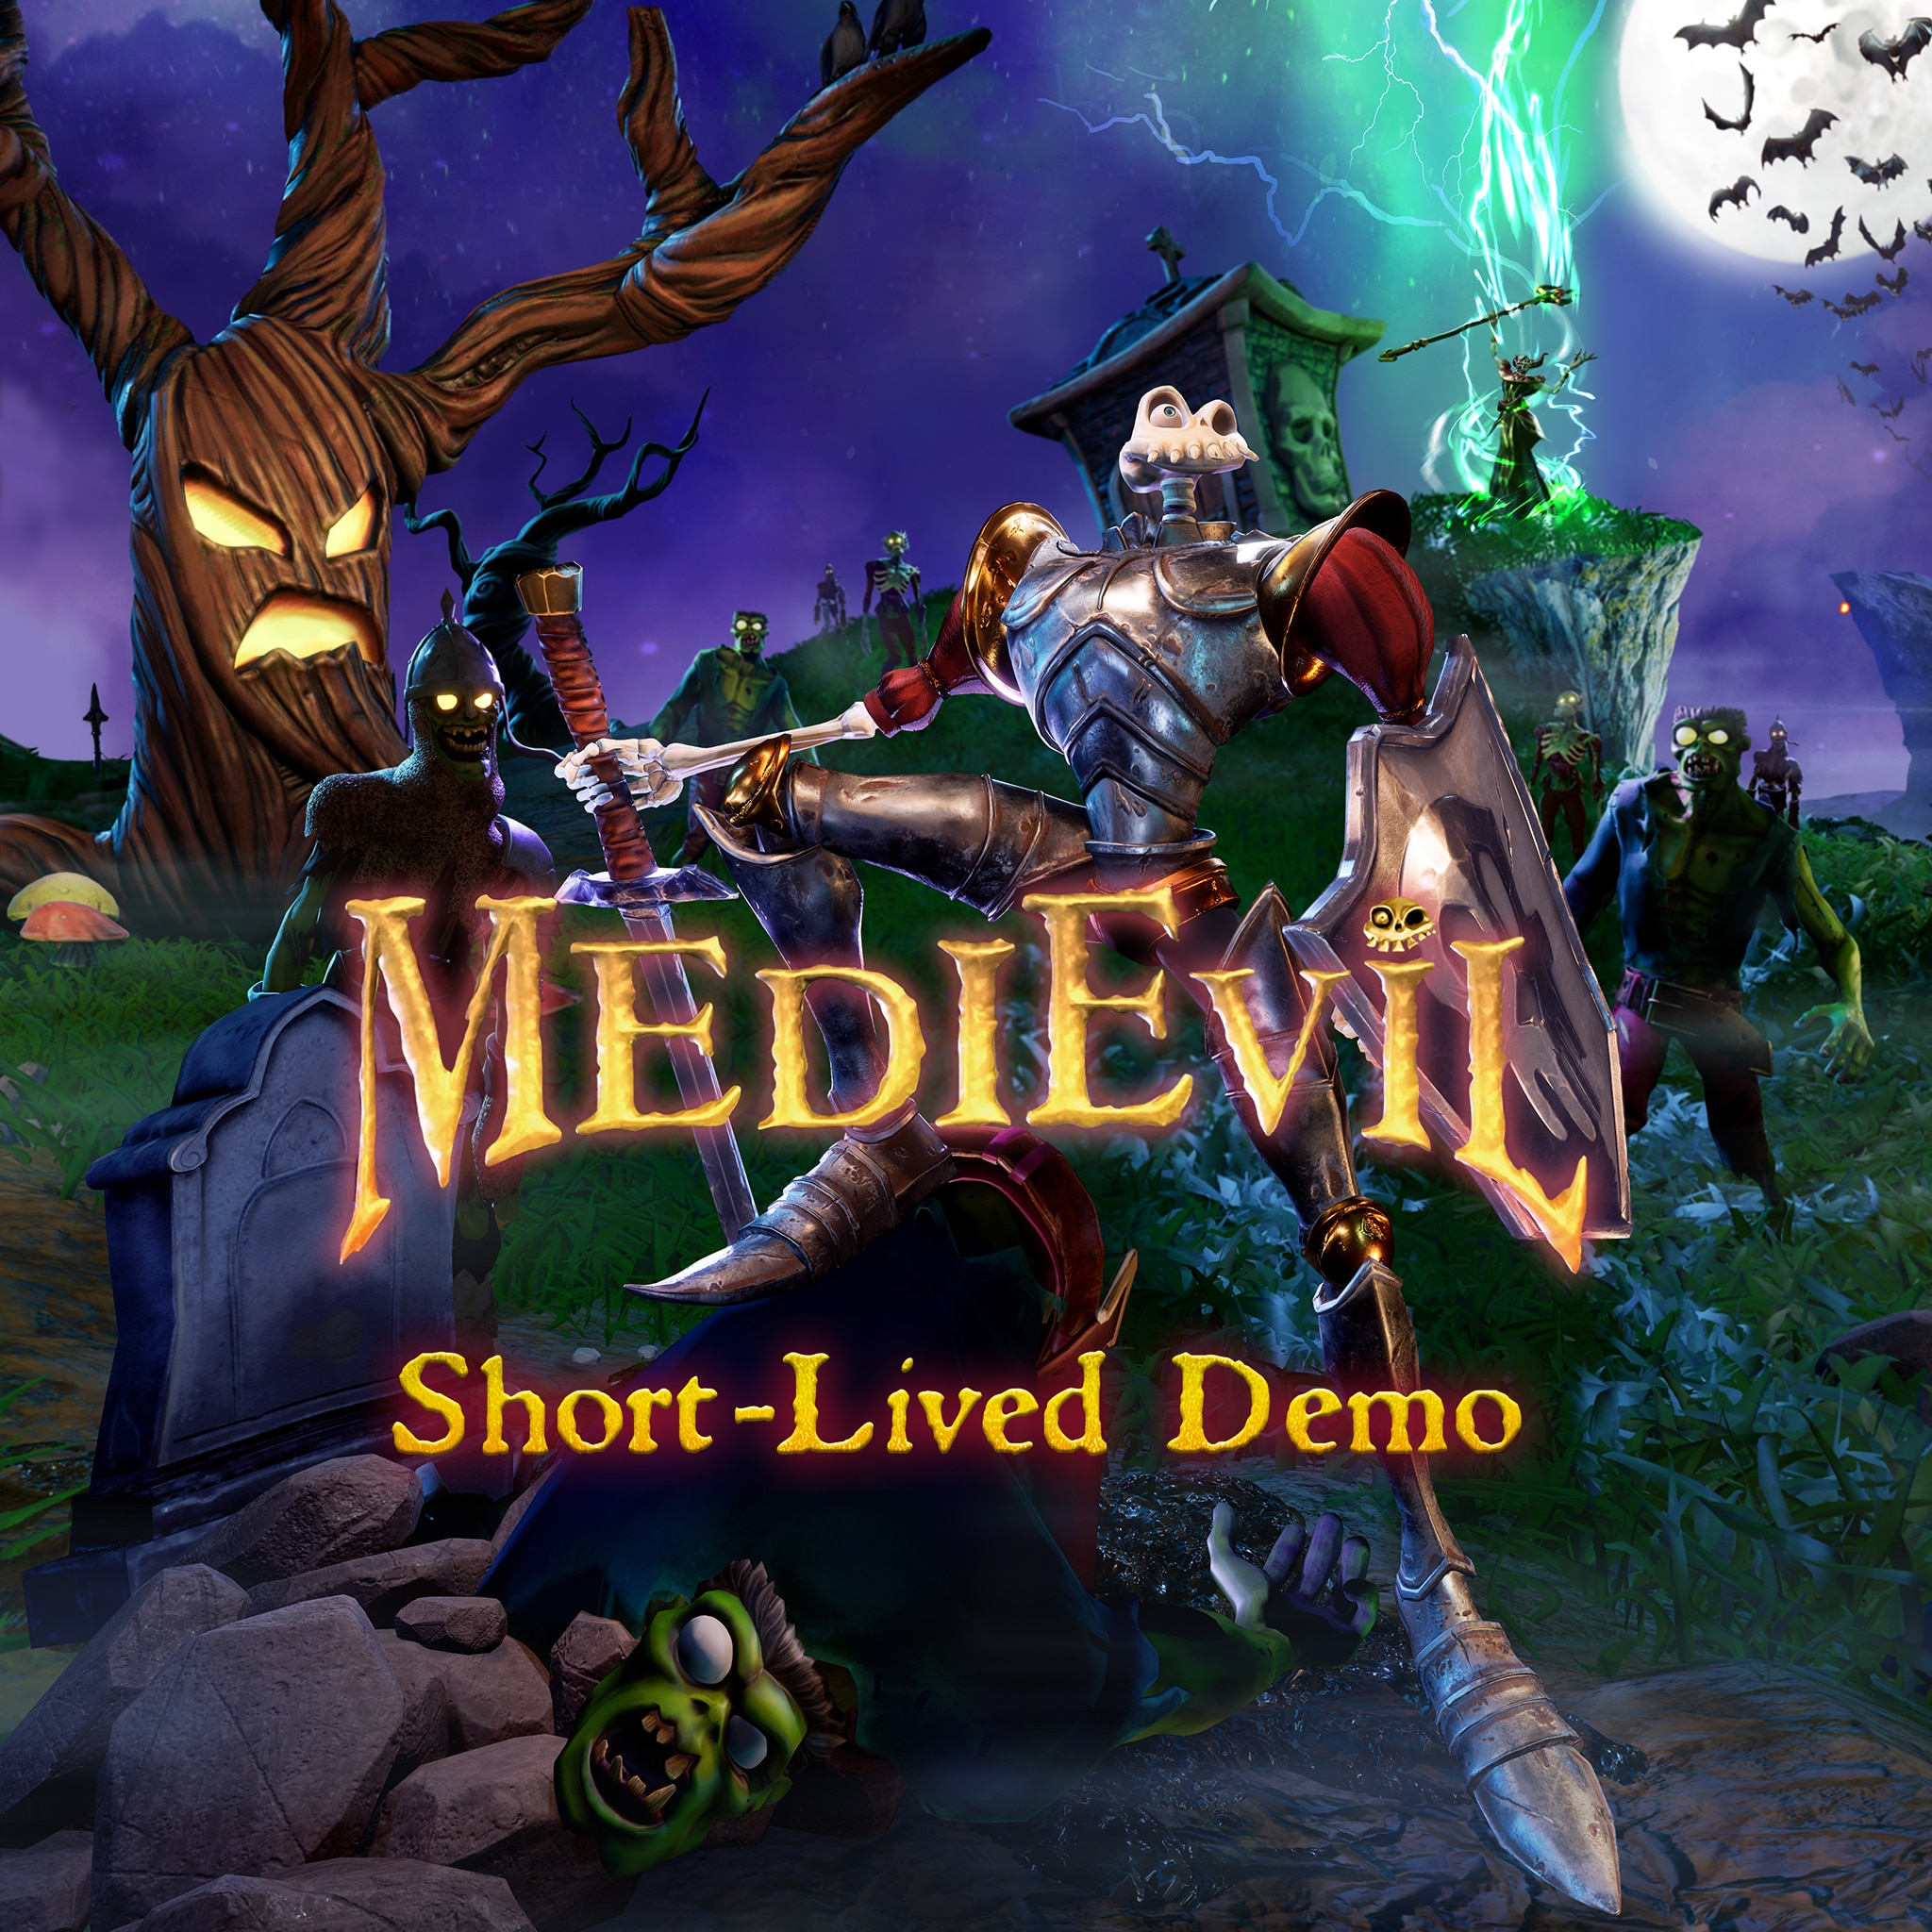 MediEvil: Short-lived Demo